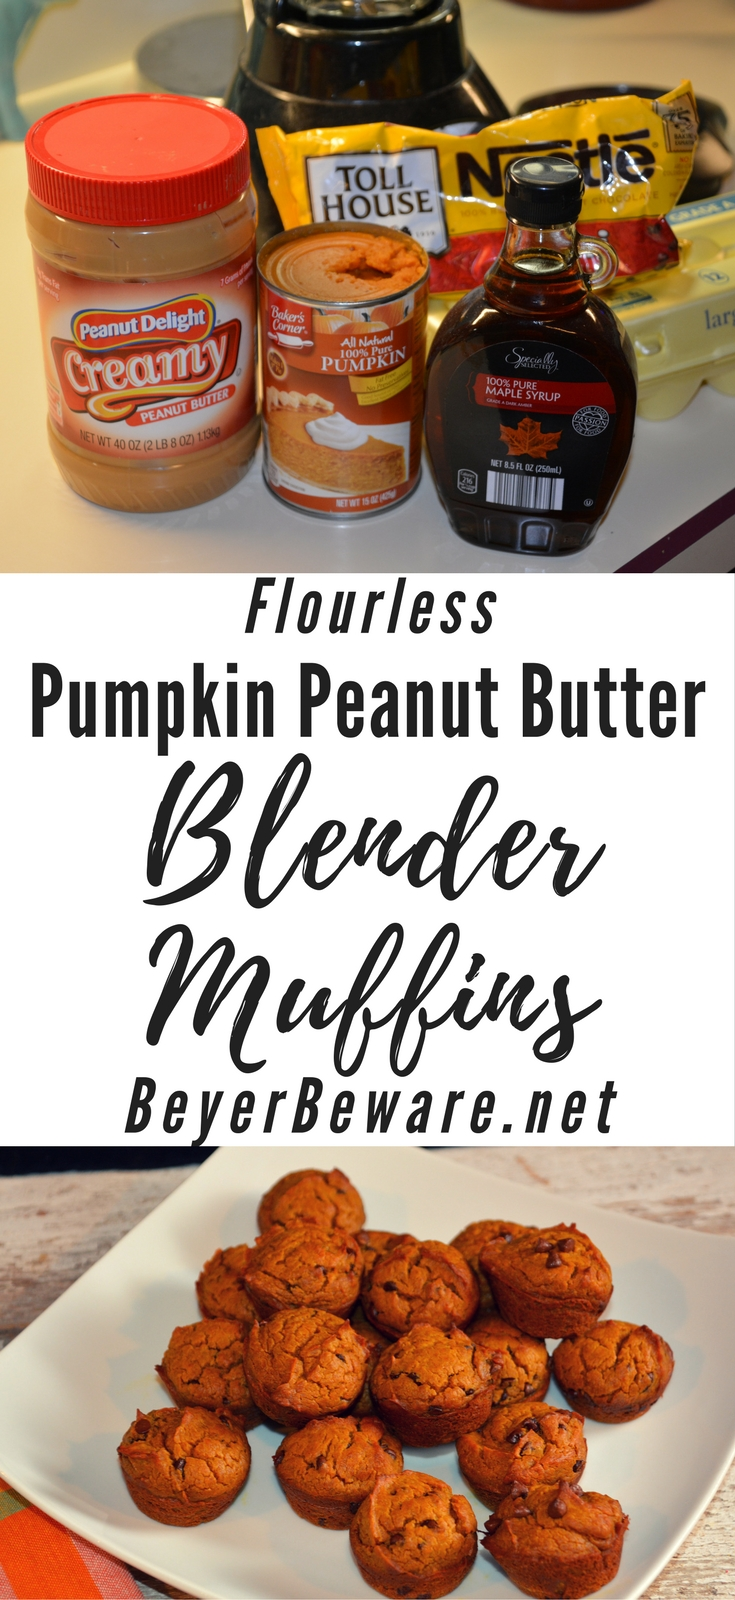 For anyone looking for a gluten-free muffin that is still satisfying, look no further than this flourless pumpkin peanut butter chocolate chip blender muffin recipe.